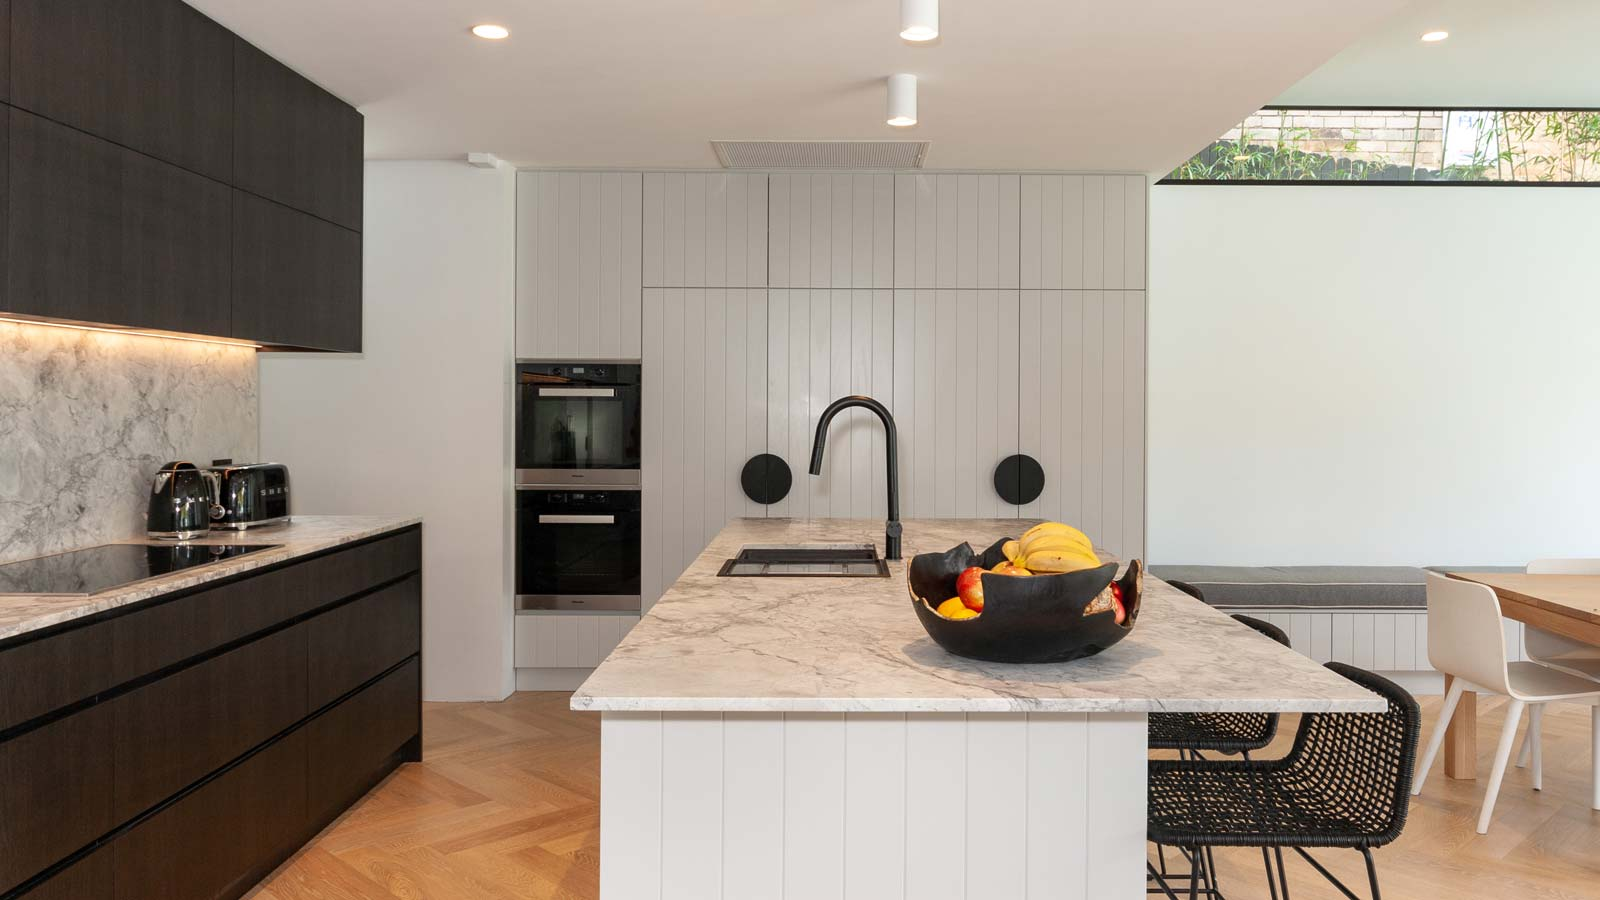 Clanalpine Rd Mosman  Premier Kitchens